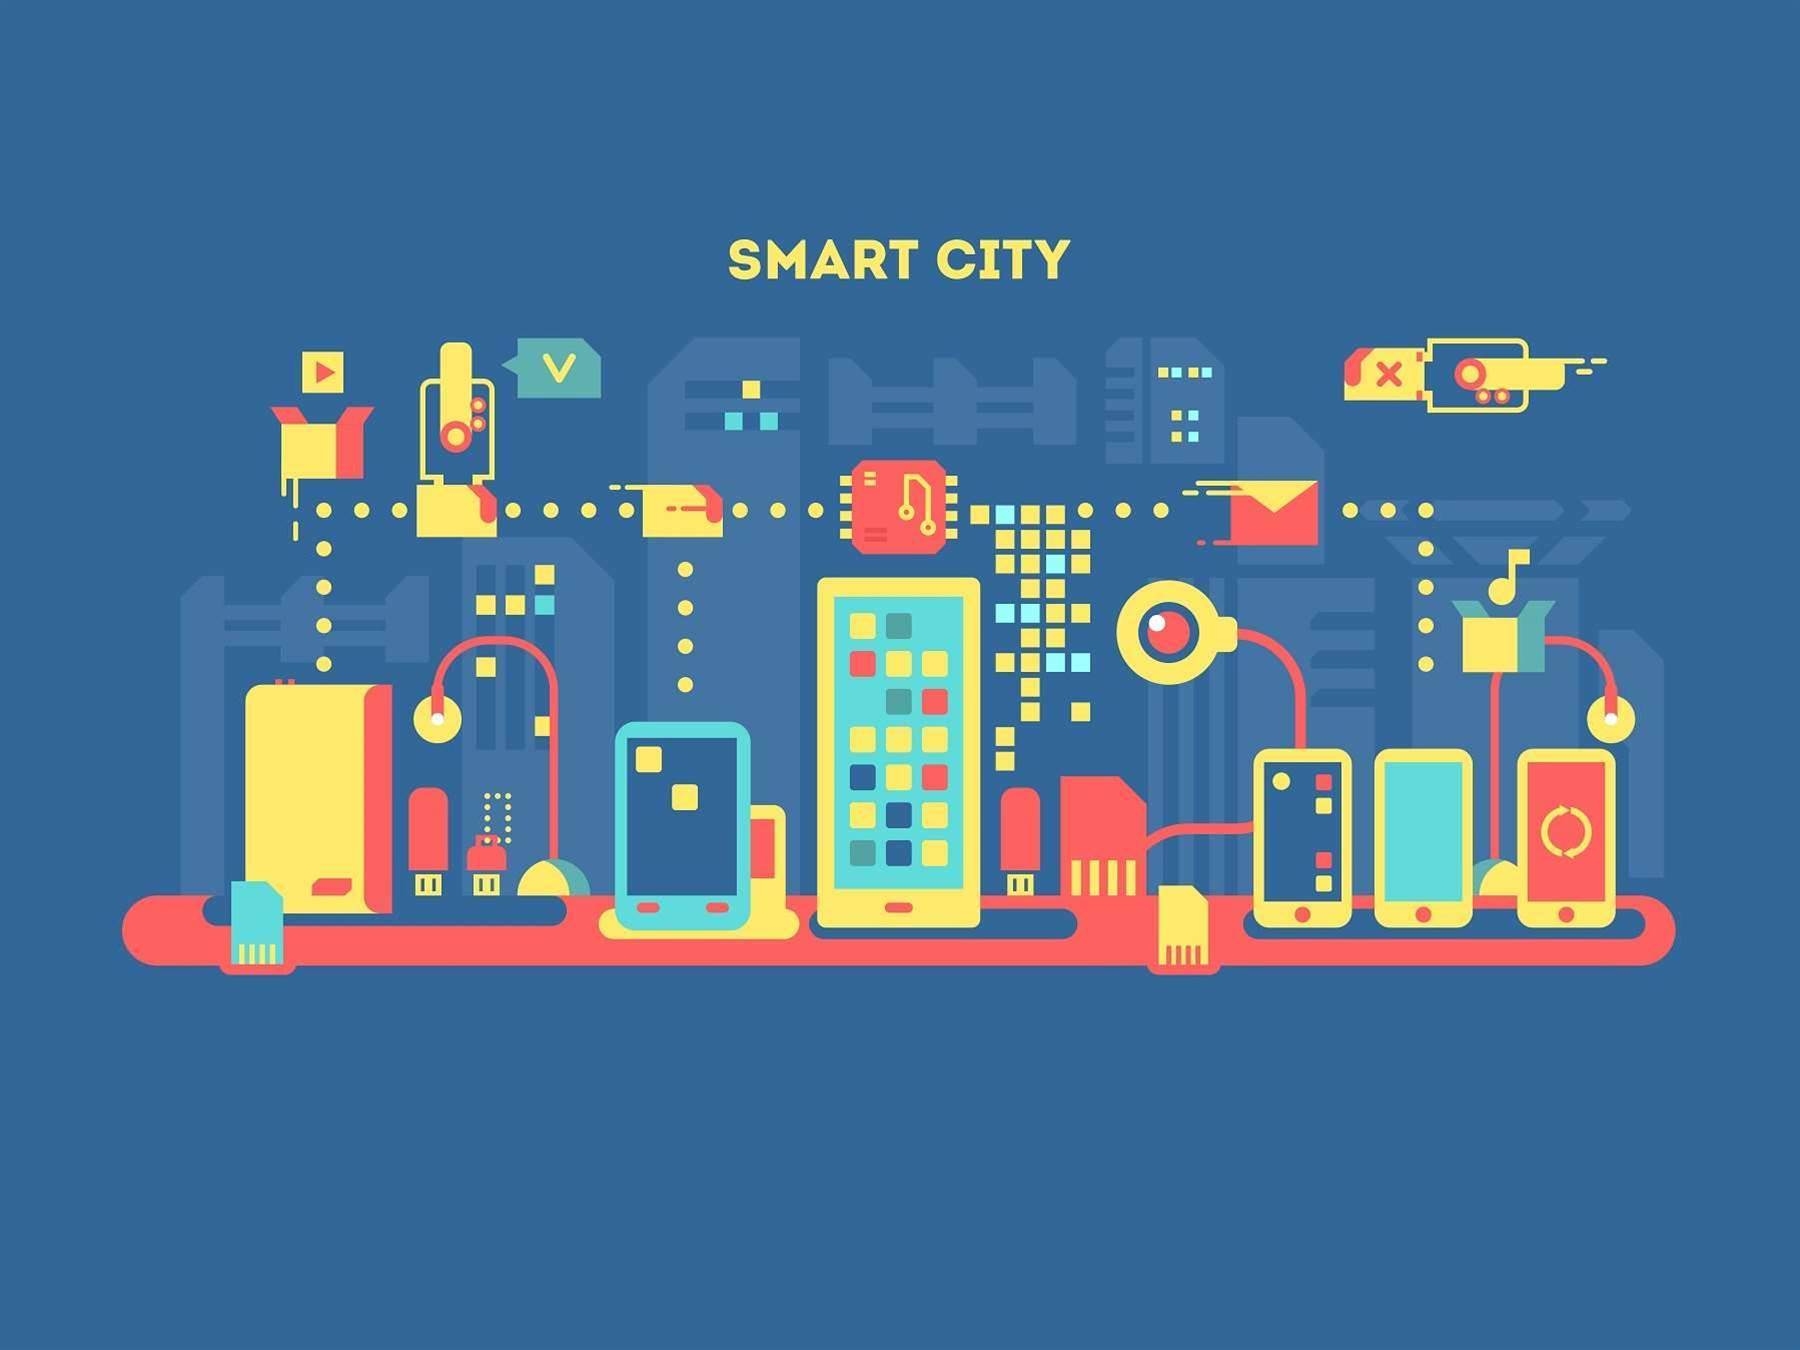 Five strategies to unlock smart city potential